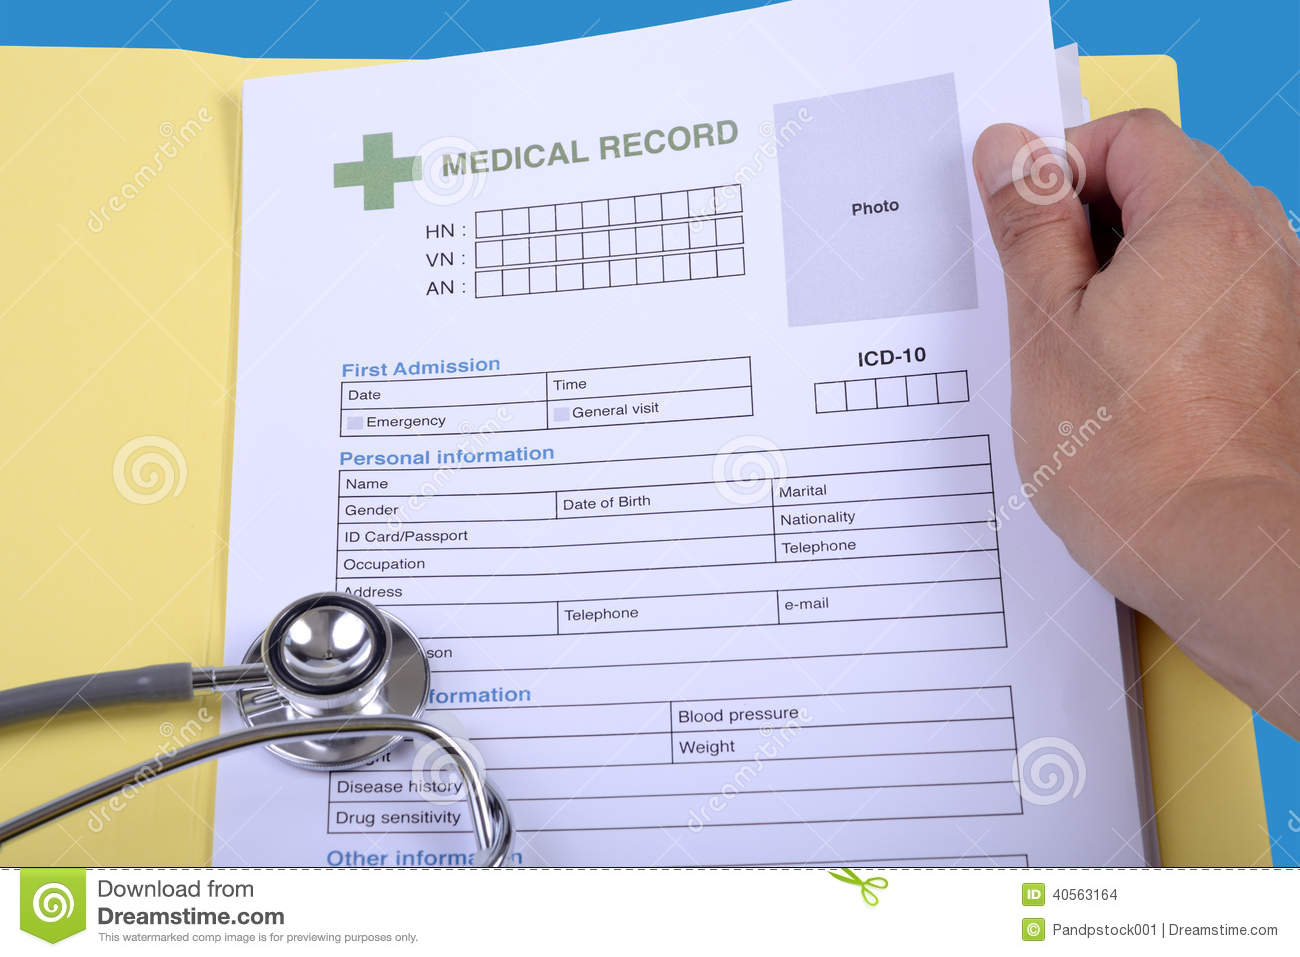 chapter 14 paper medical record Solution, cat 2007 question paper with solutions, chapter 10 solutions to macroeconomics by gregory mankiw, chemistry chapter 15 the time to finish reading a book will be always various depending on spar time to spend one example is this chapter 14 the paper medical record answer.